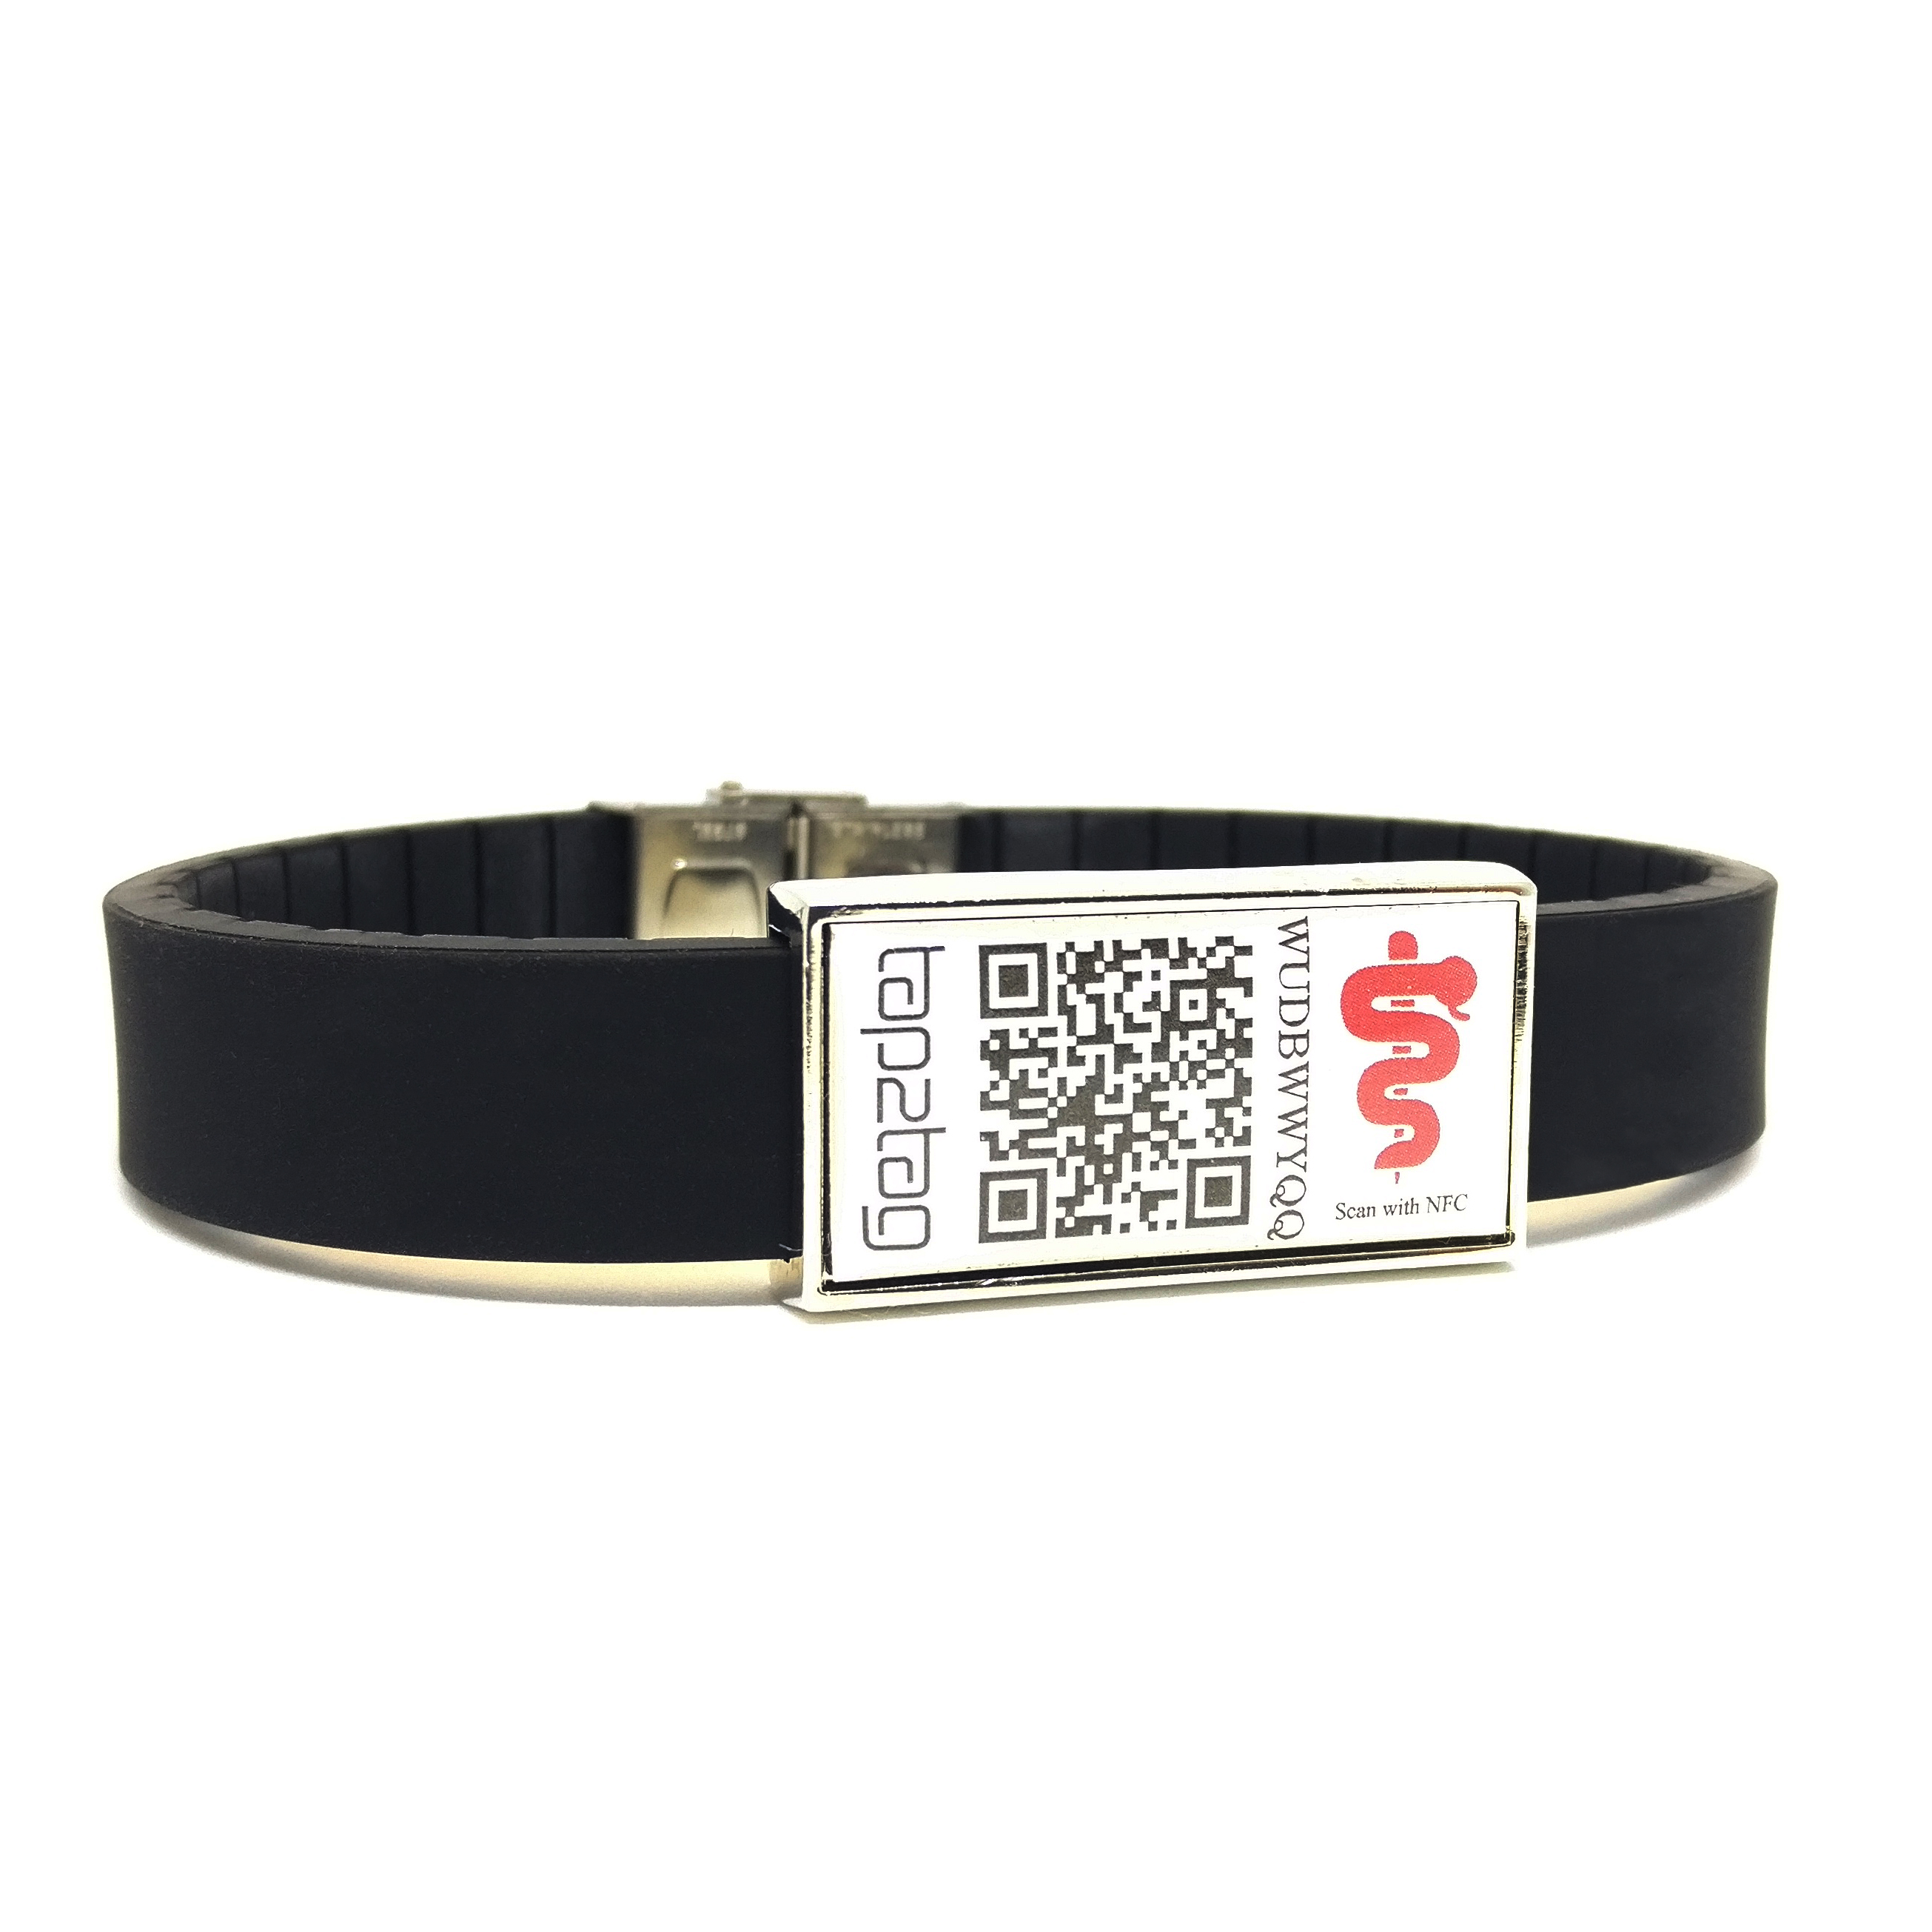 Tap2Tag V3 wristband